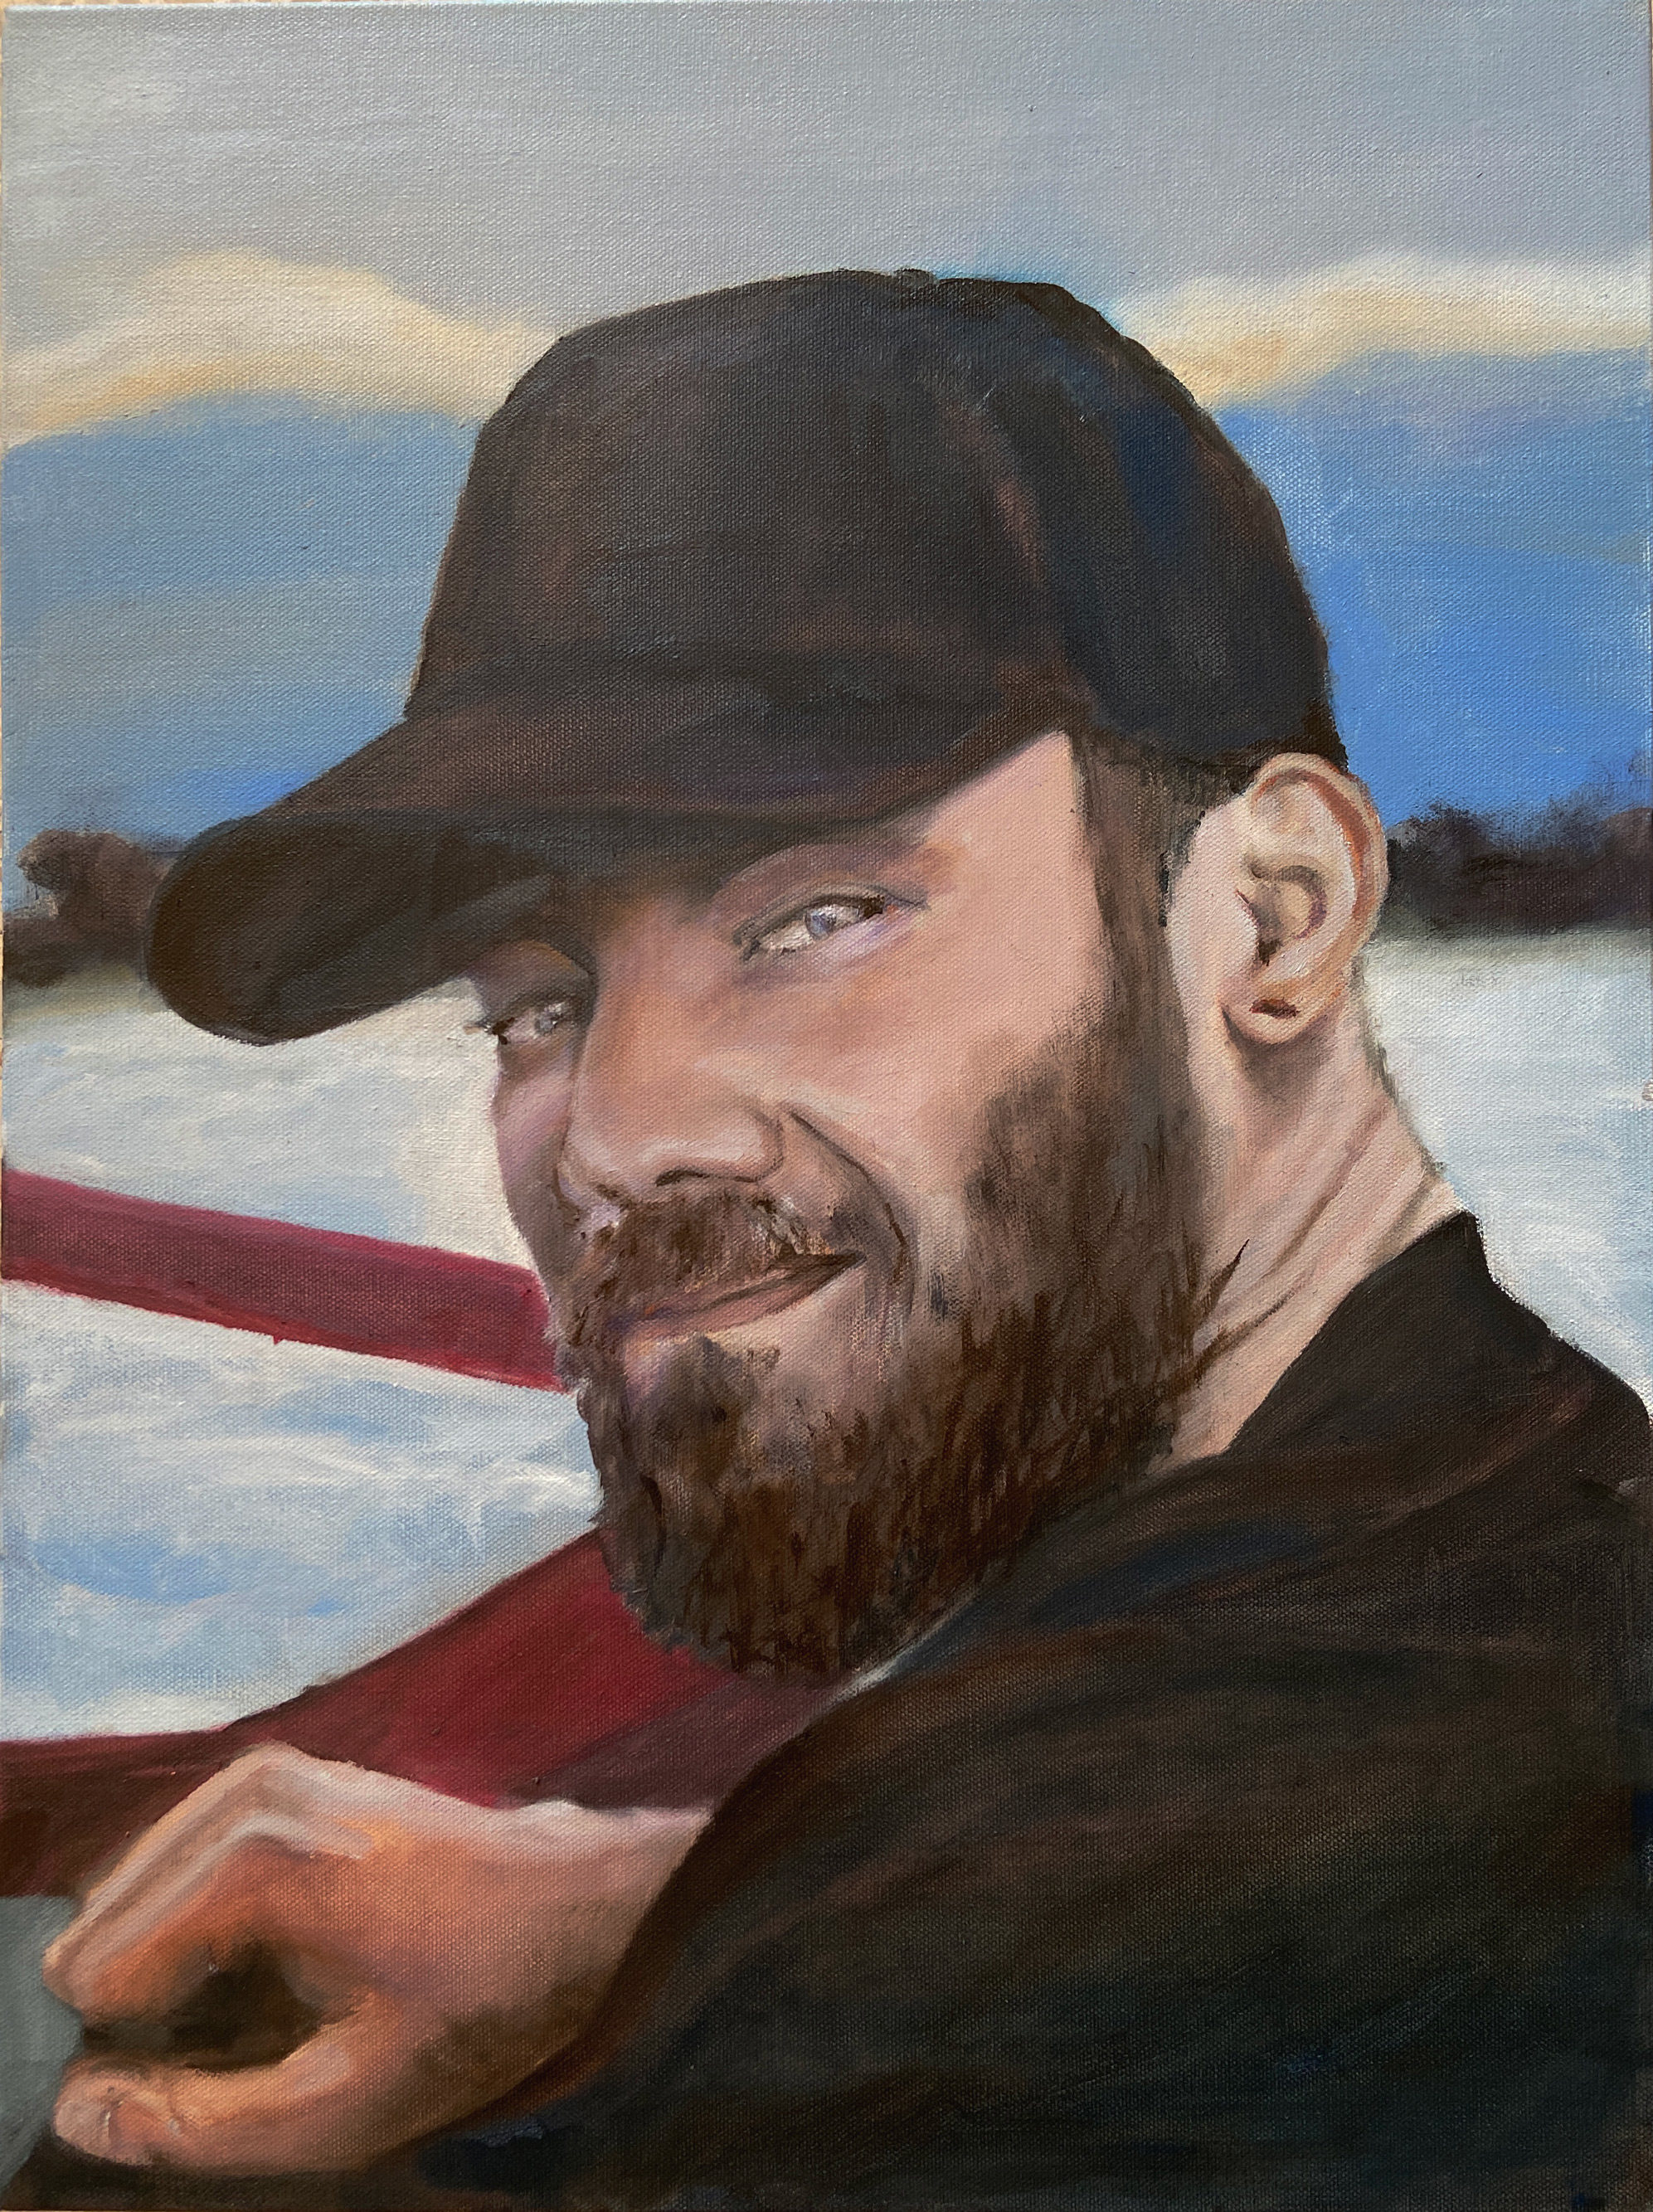 "In loving memory of Shane Swenson, 18x24"" oil on canvas. April 2020"